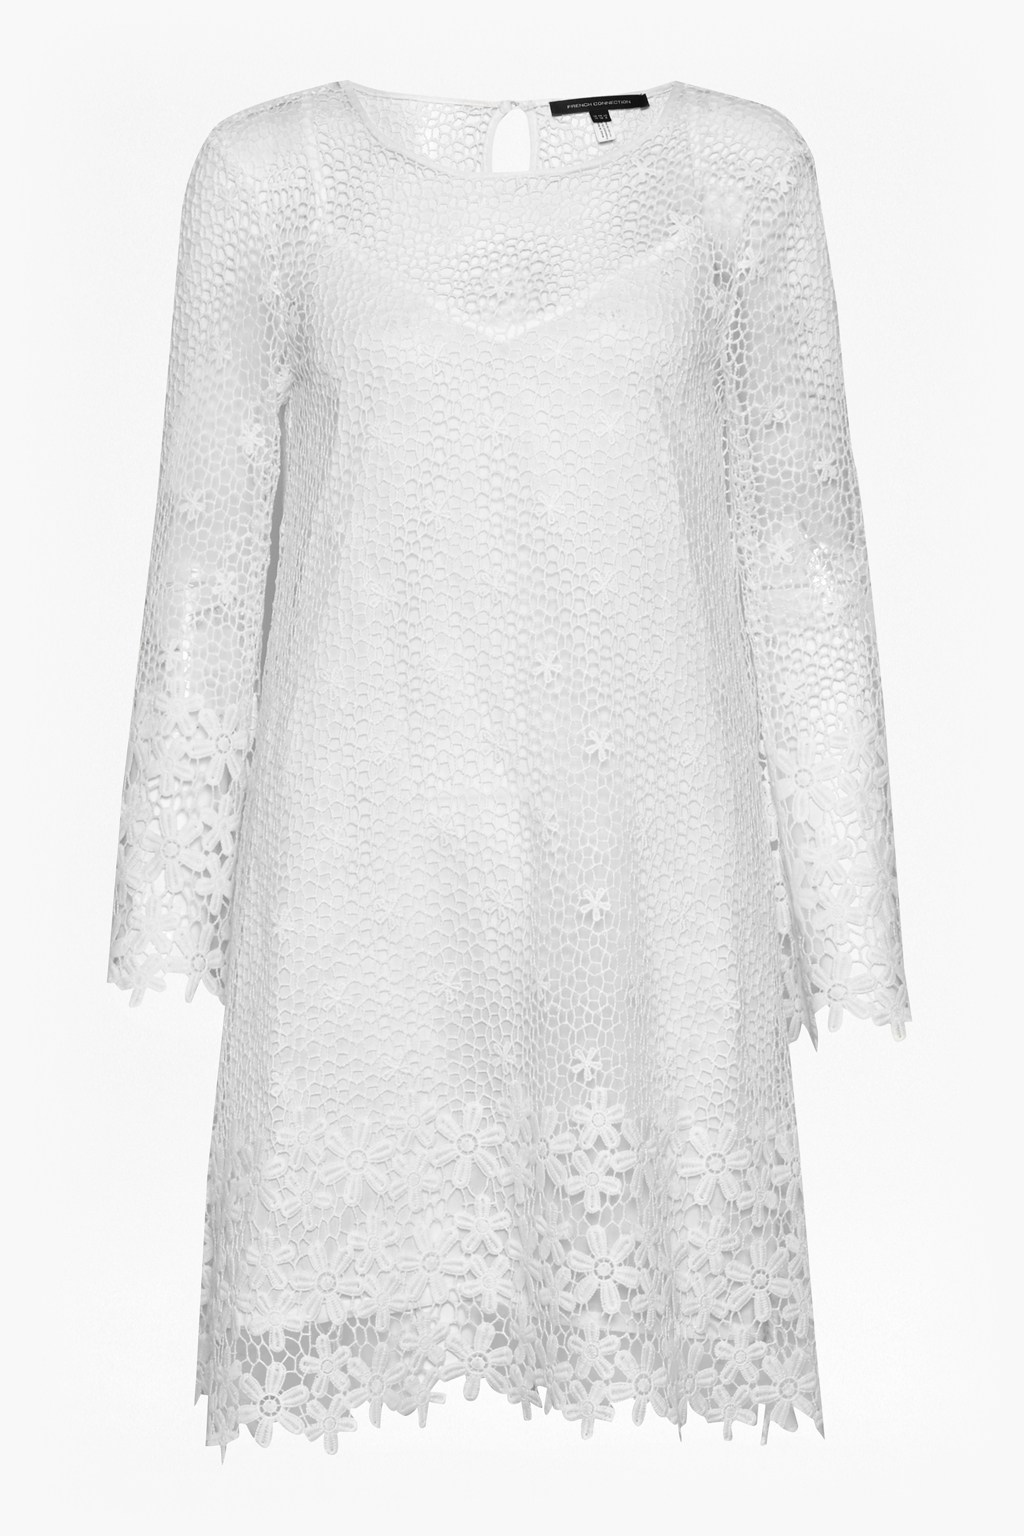 766f406515c3 Posy Lace Bell Sleeve Dress   Collections   French Connection